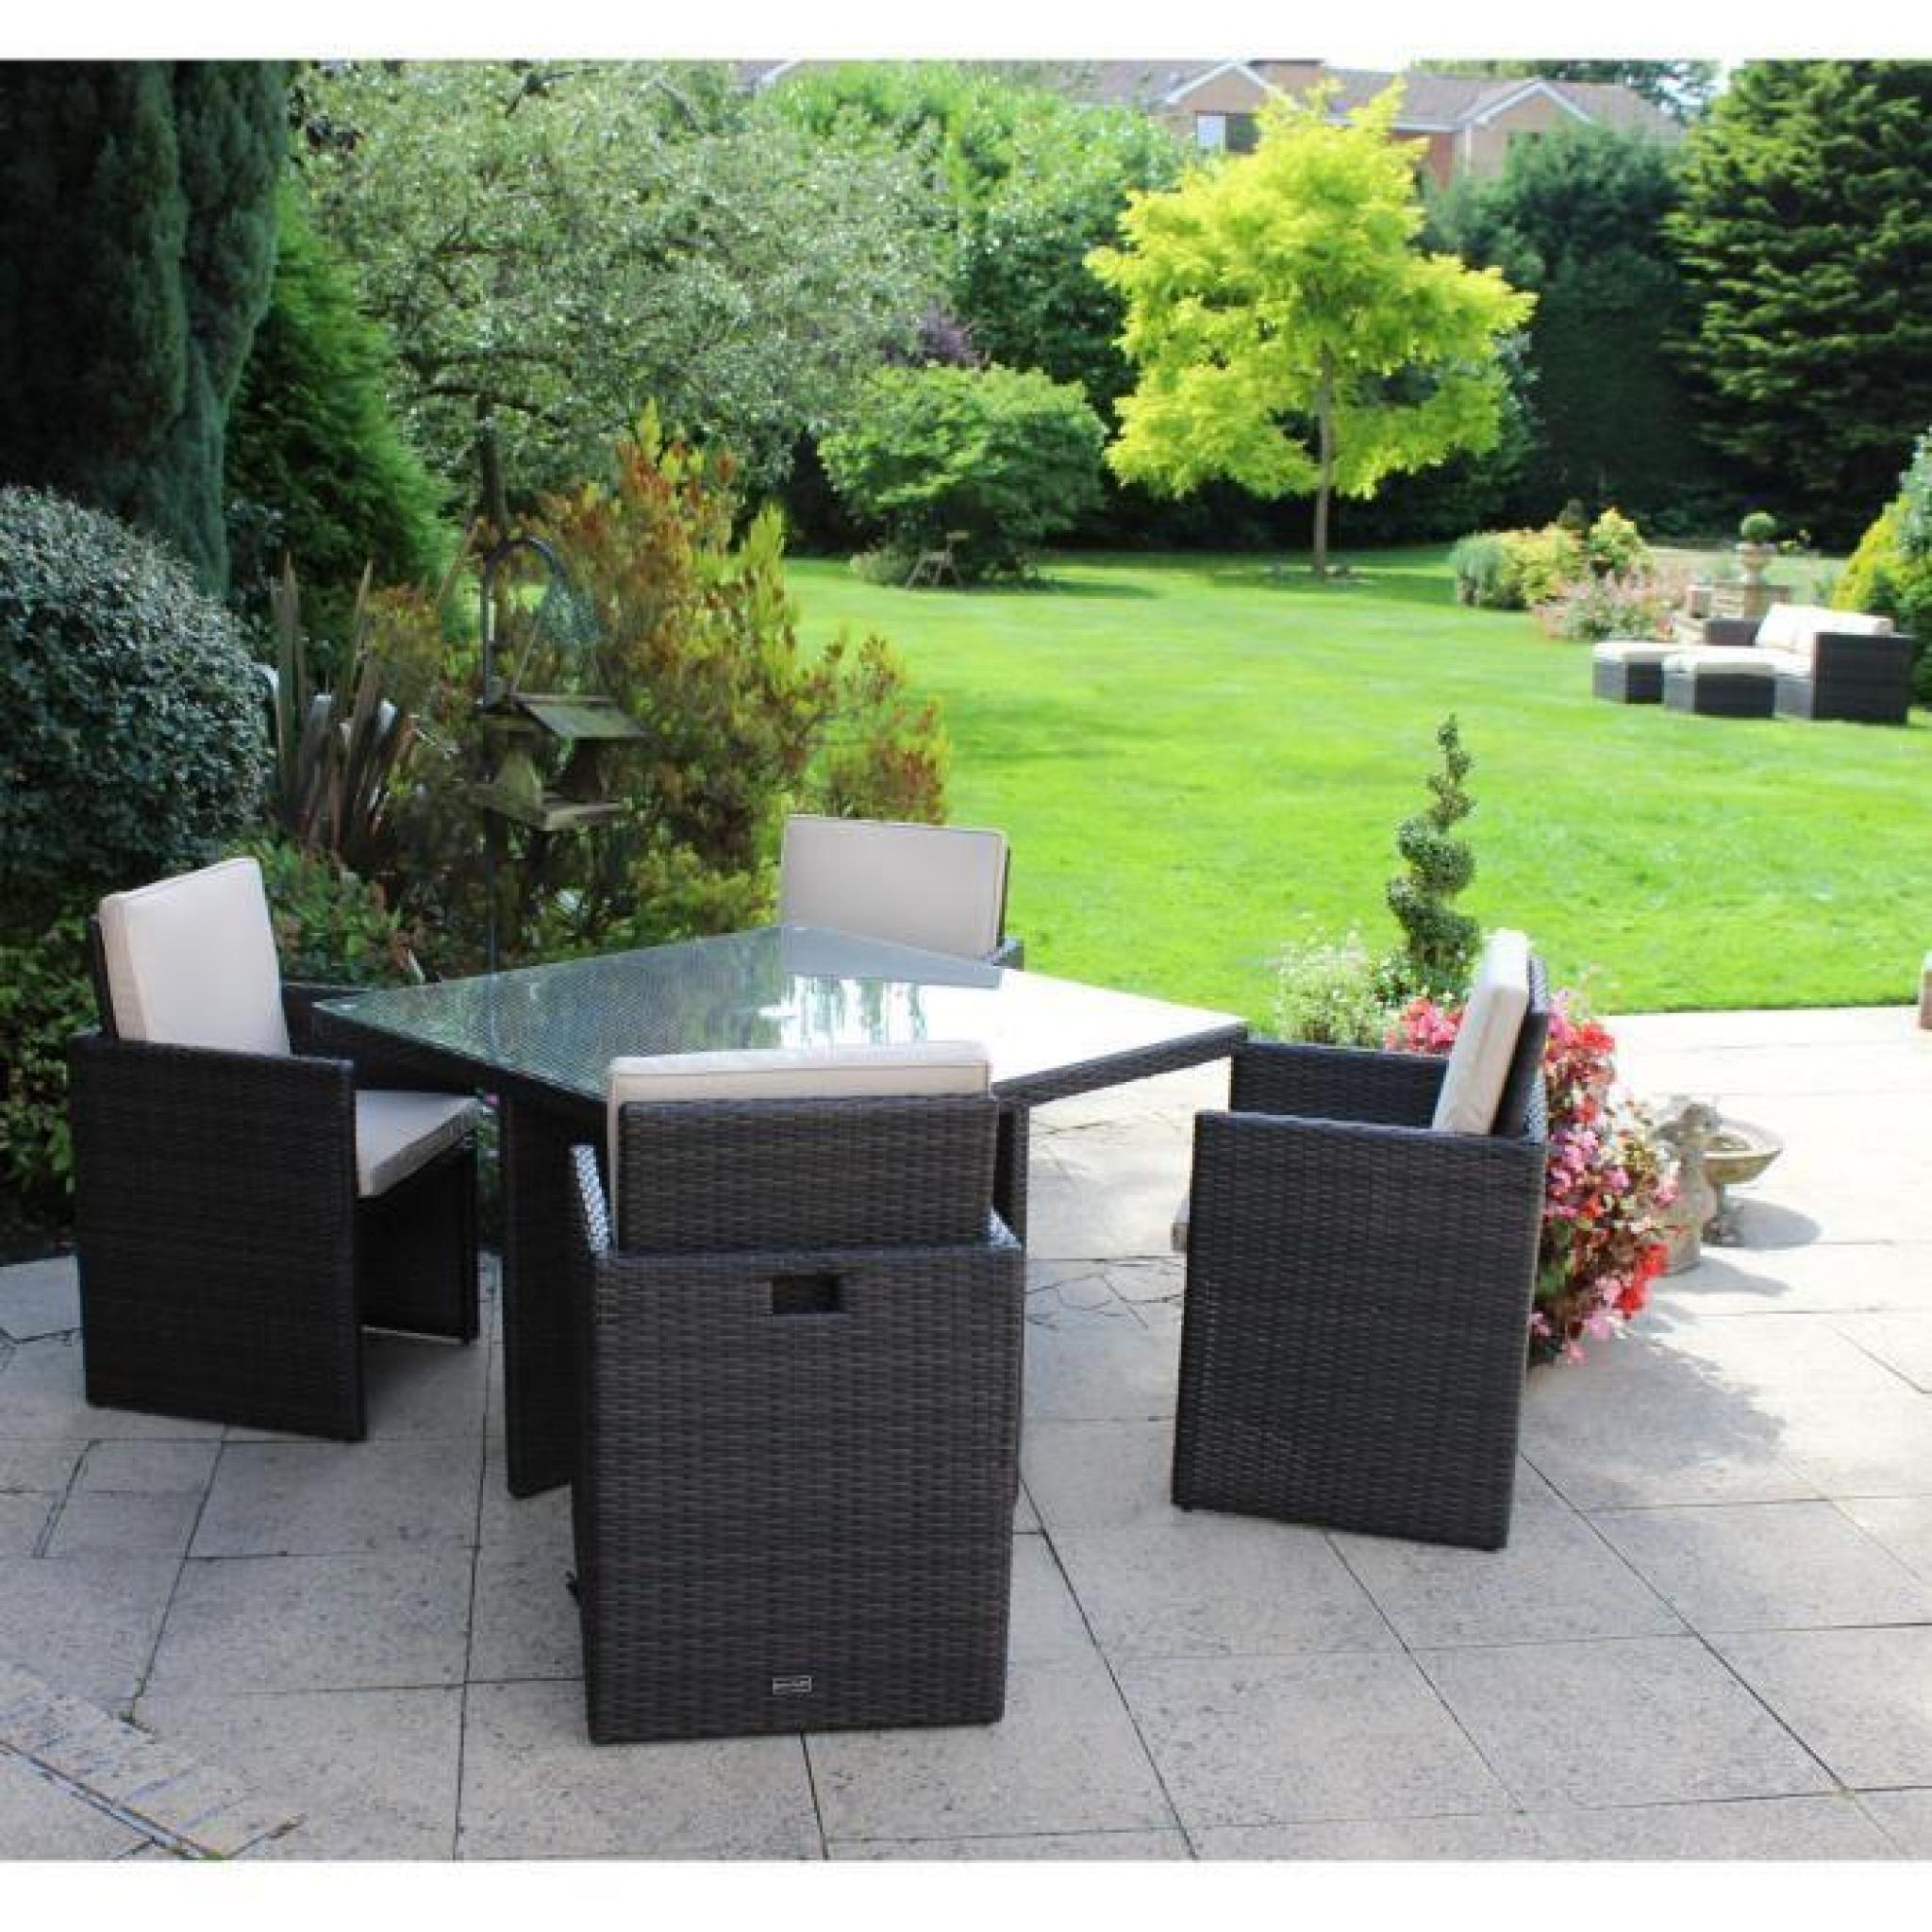 Ensemble salon de jardin - 4 chaises et 1 table - imitation rotin ...